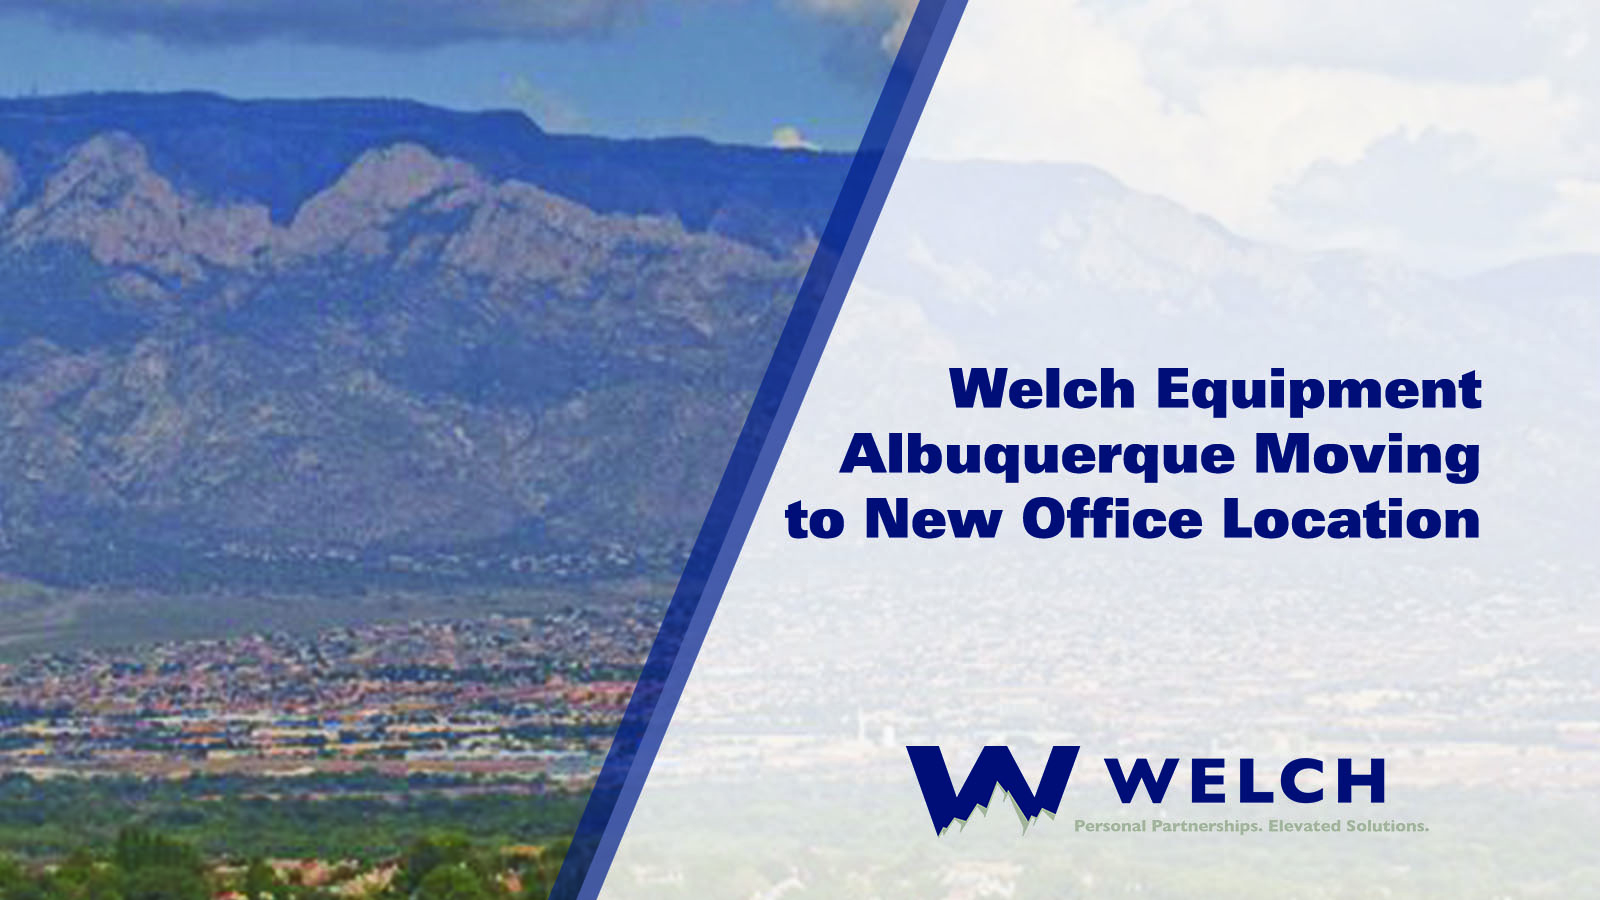 welch equipment albuquerque new mexico